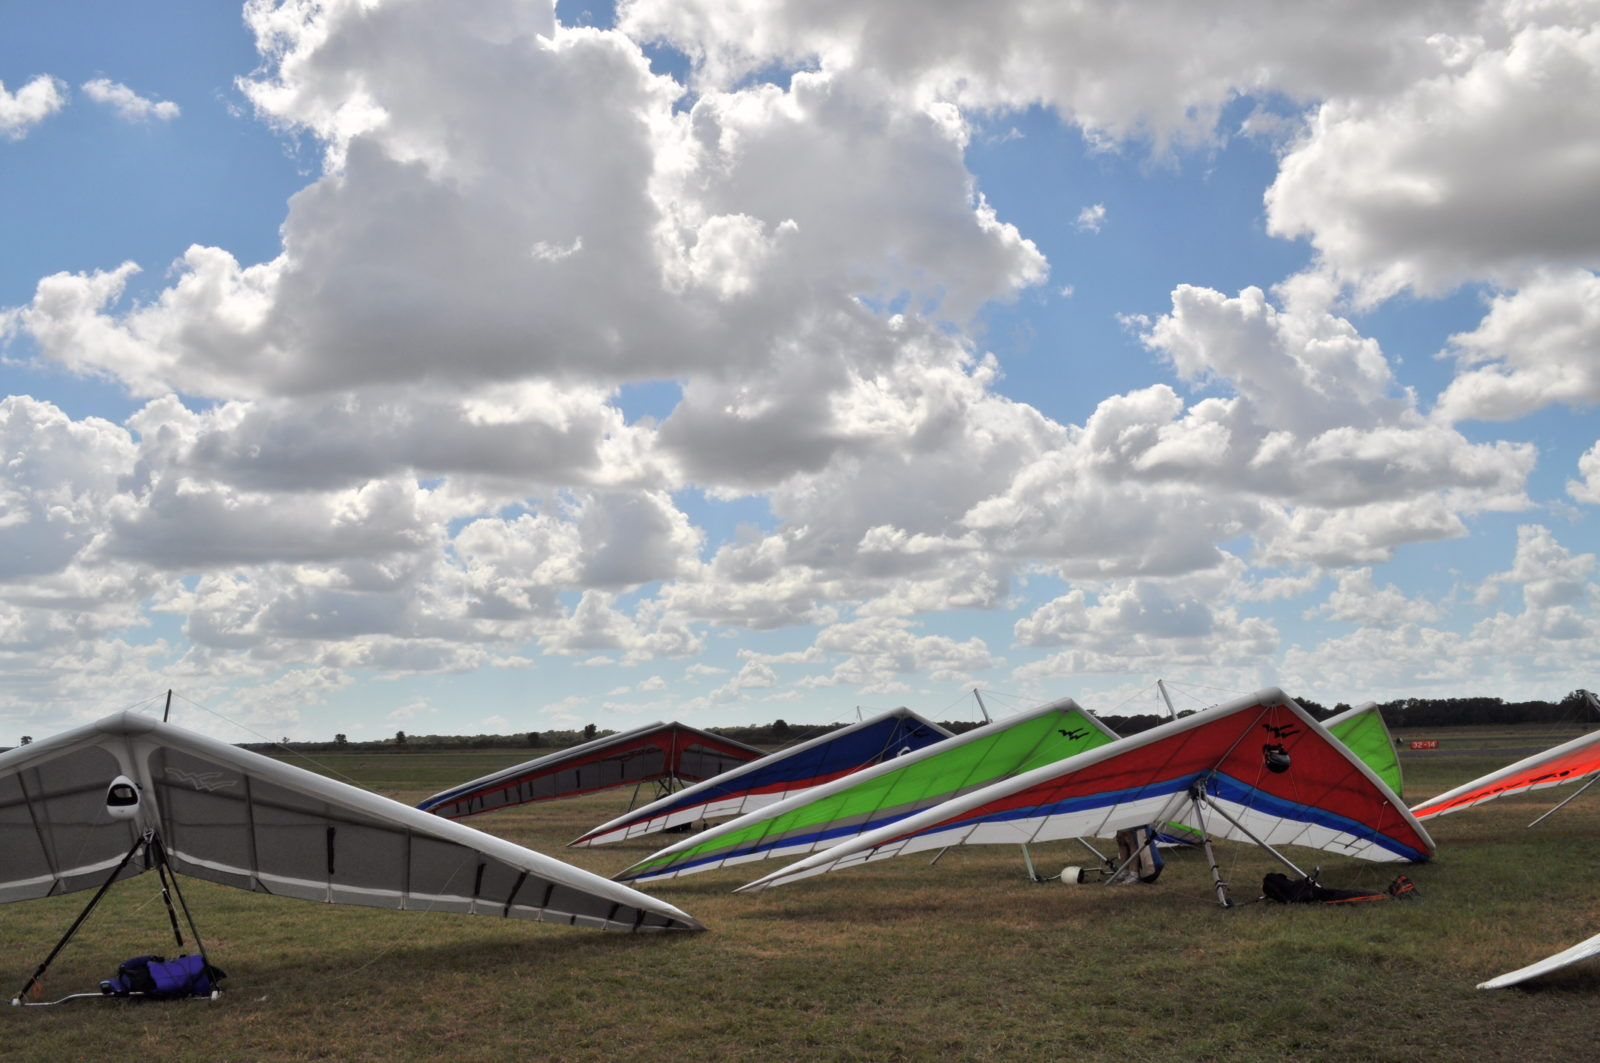 Hang Gliding School near Houston | Cowboy Up Hang Gliding in Houston